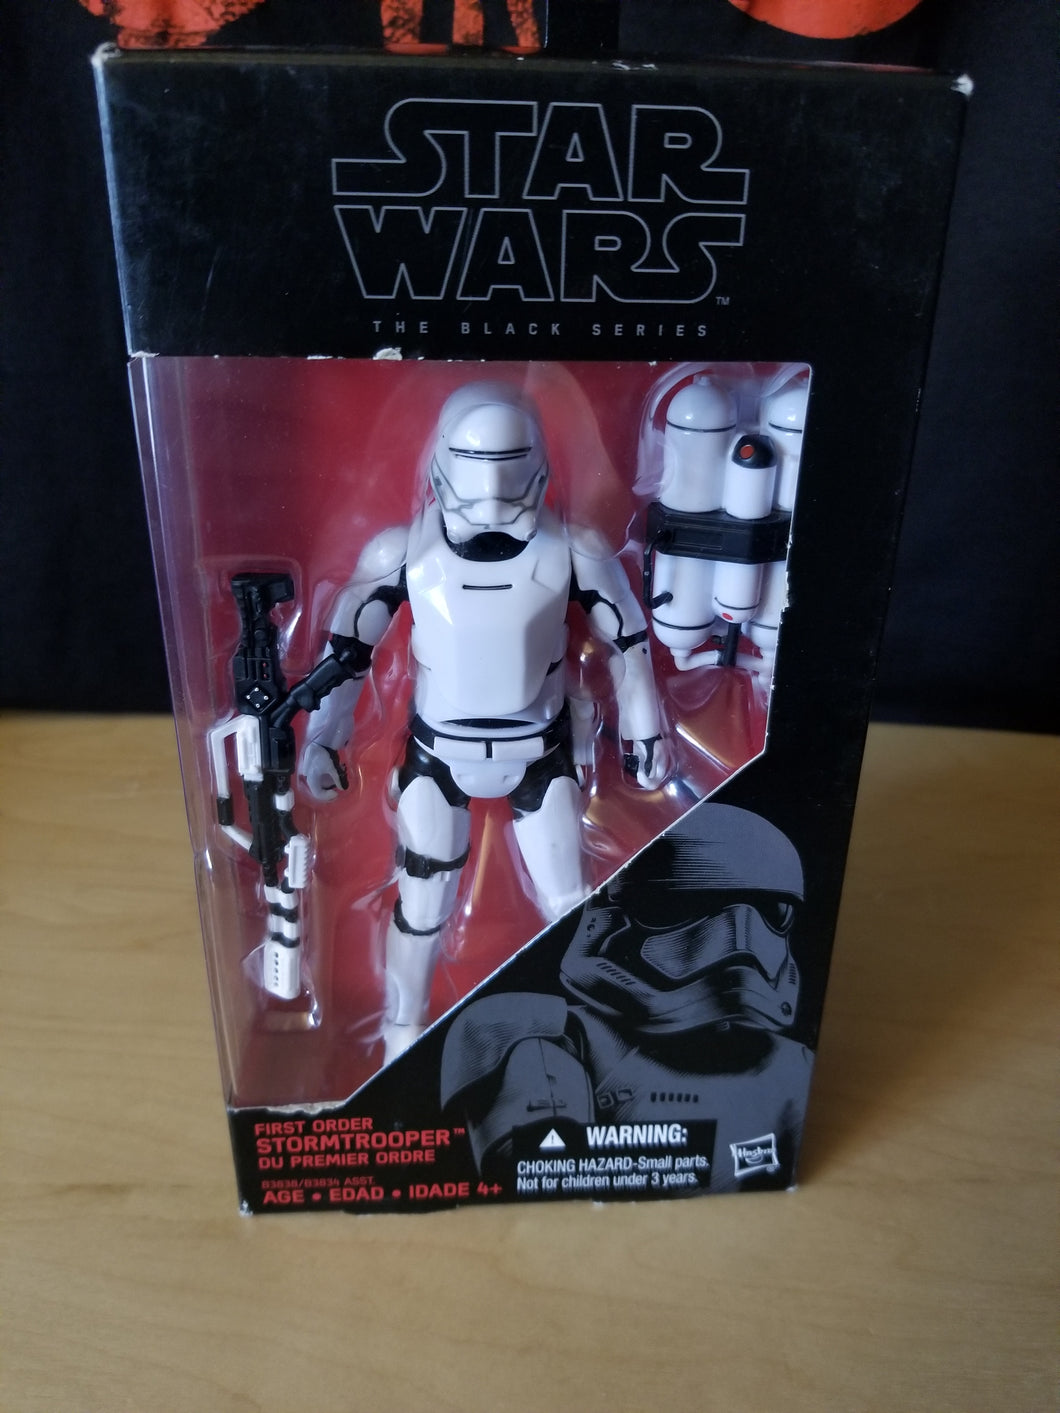 Flametrooper - VARIANT Box Error (RARE) - The Black Series (6-inch figure)